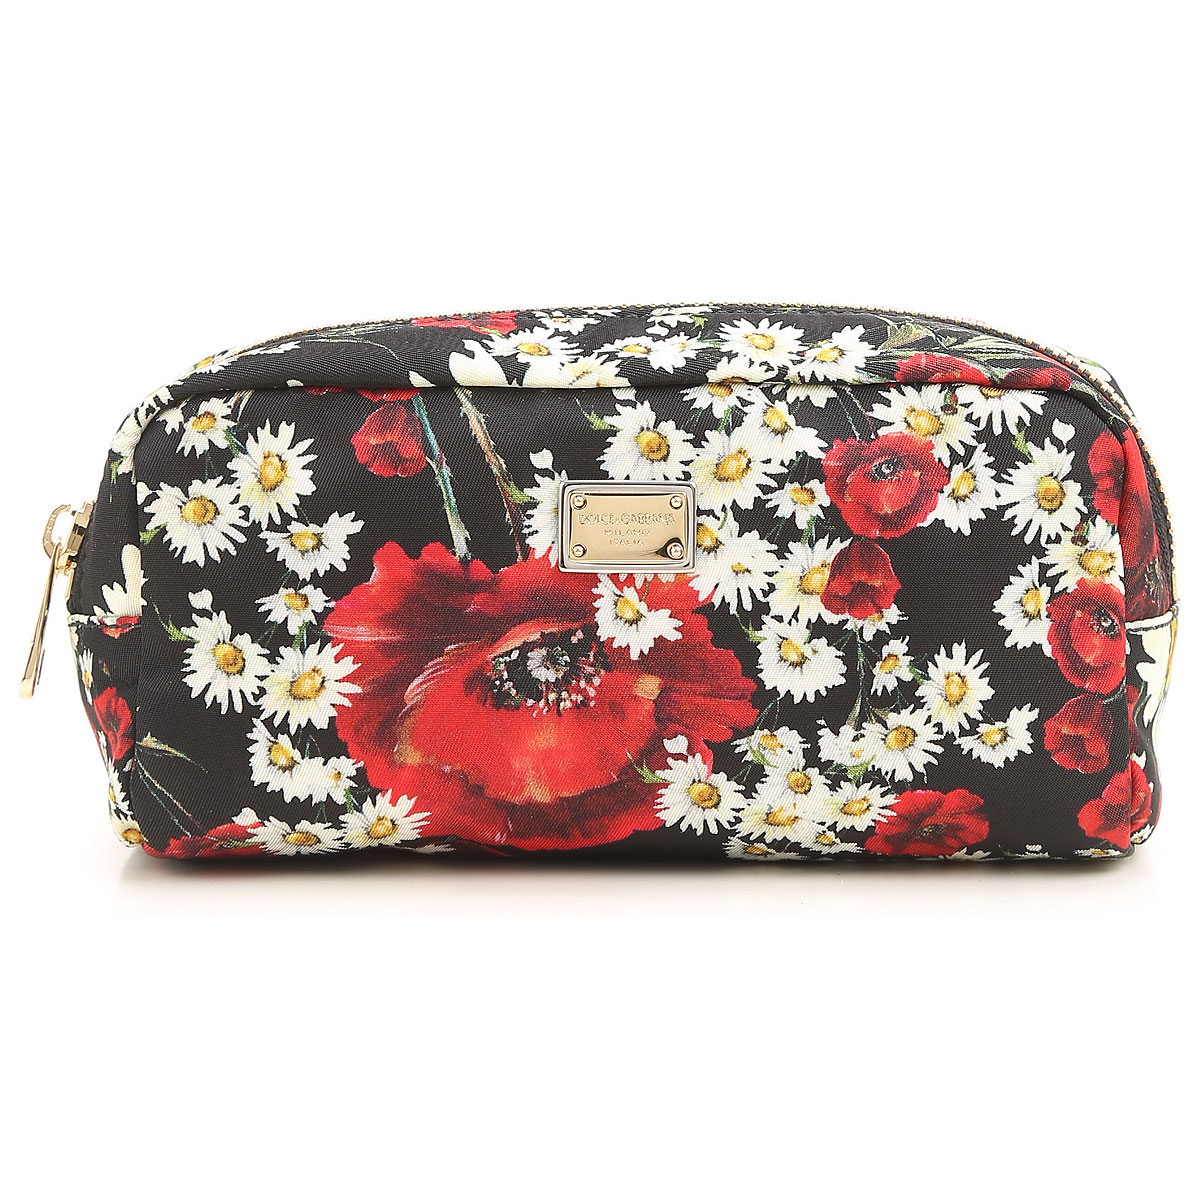 Image of Dolce & Gabbana Womens Accessories On Sale in Outlet, Black, Nylon, 2017